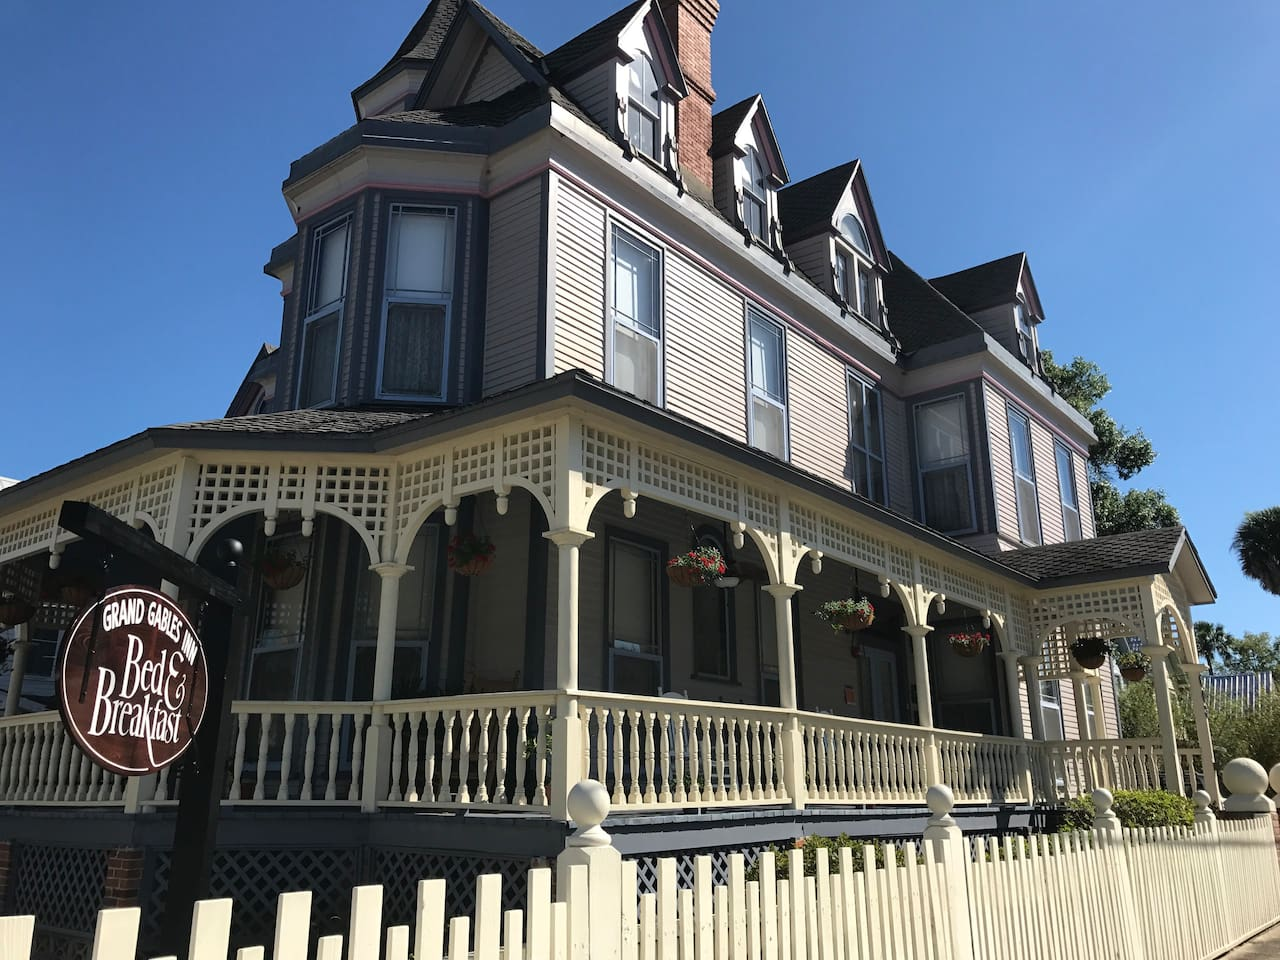 The Magnificent Grand Gables Inn, Bed & Breakfast. View from corner of Emmett and Dodge.